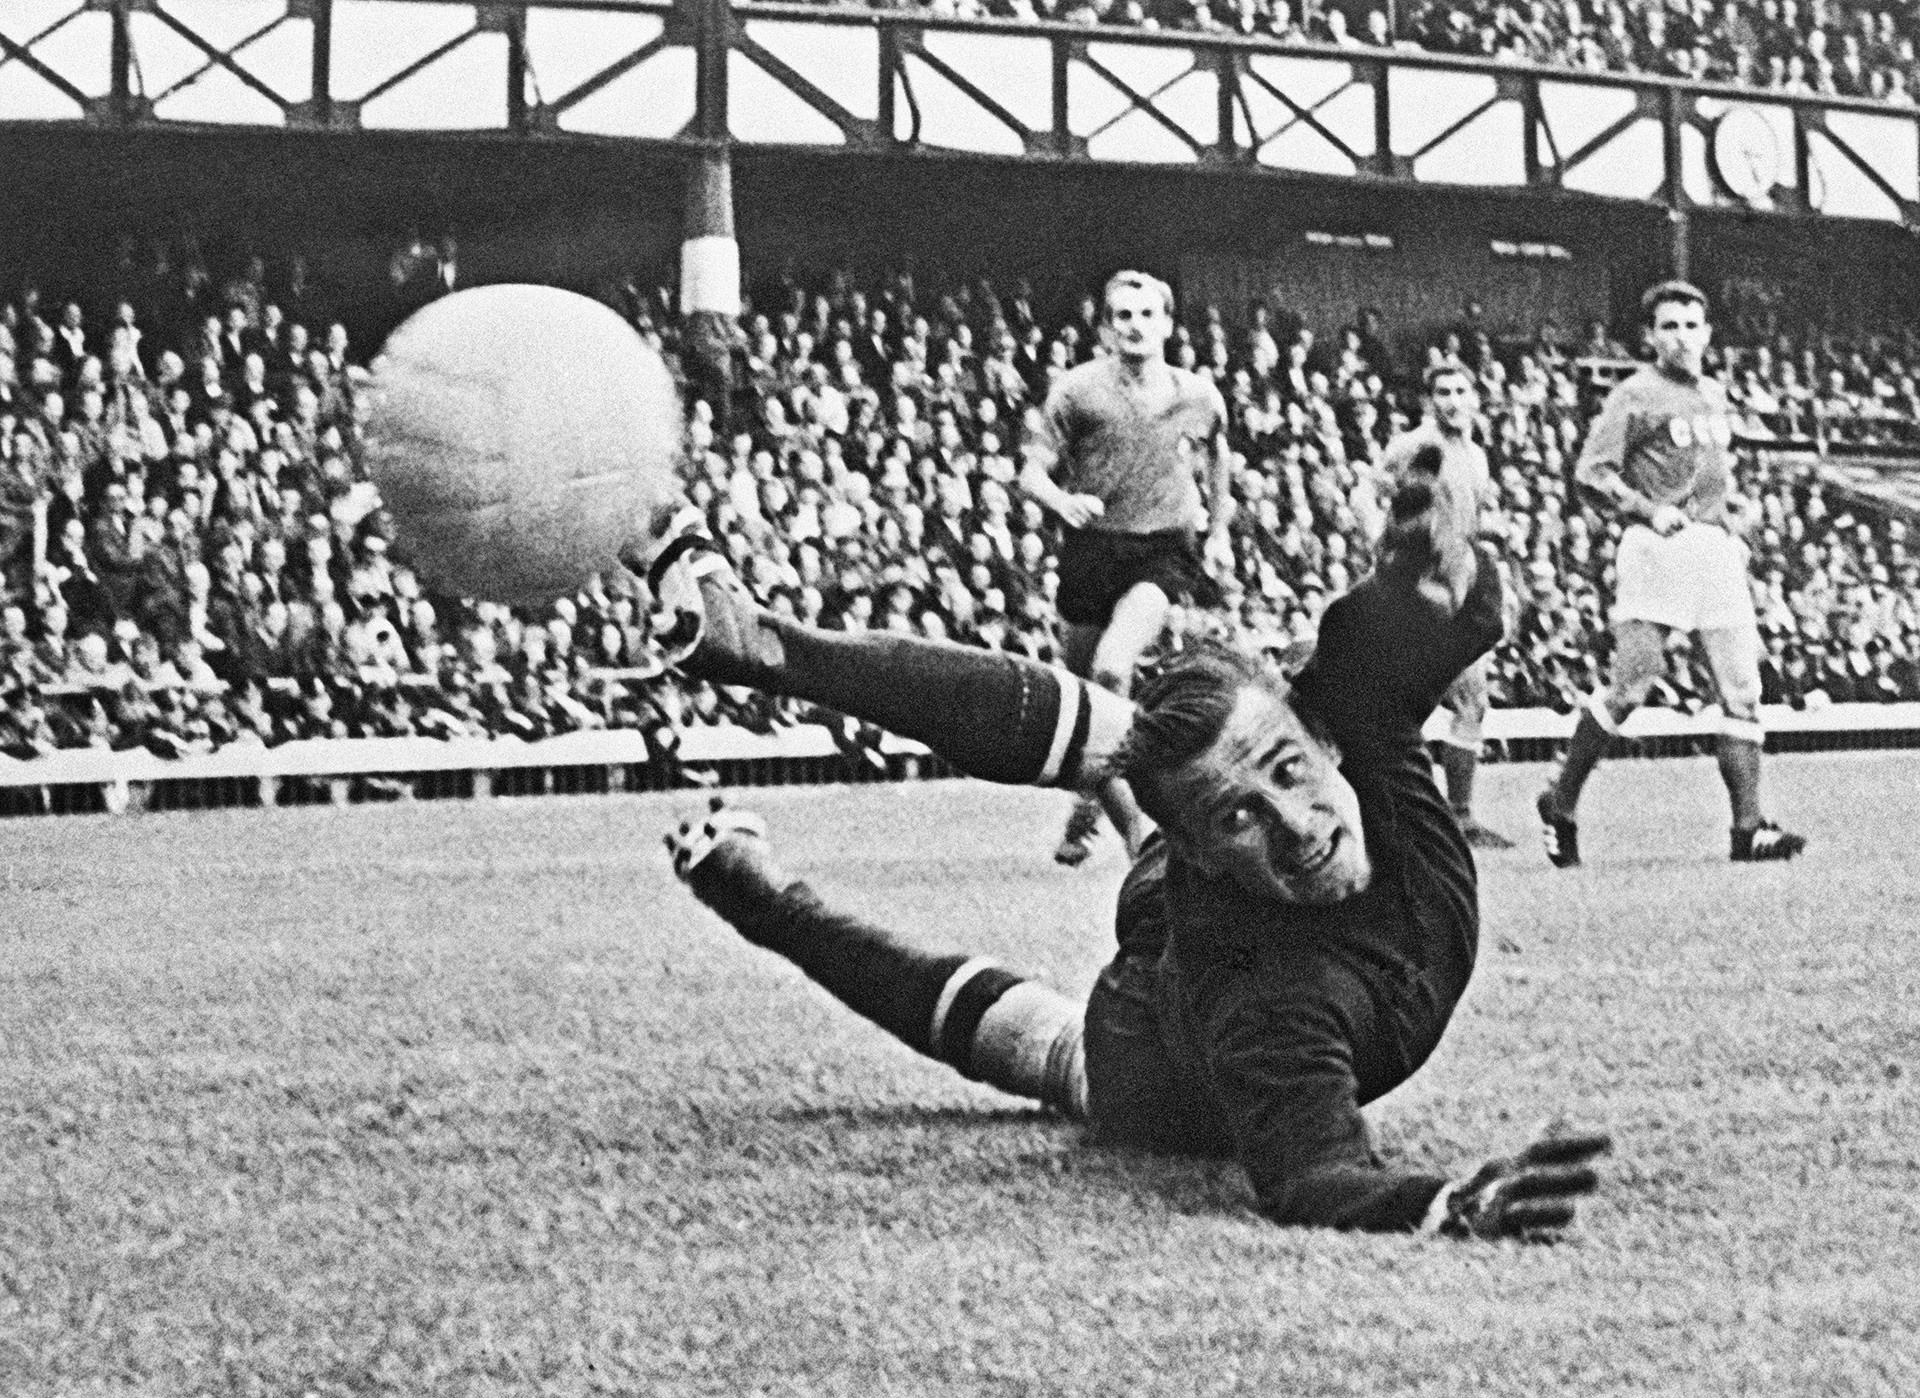 Yashin was famous for his acrobatic skills and reaction, as well as changing the pattern of goalkeeper's play.